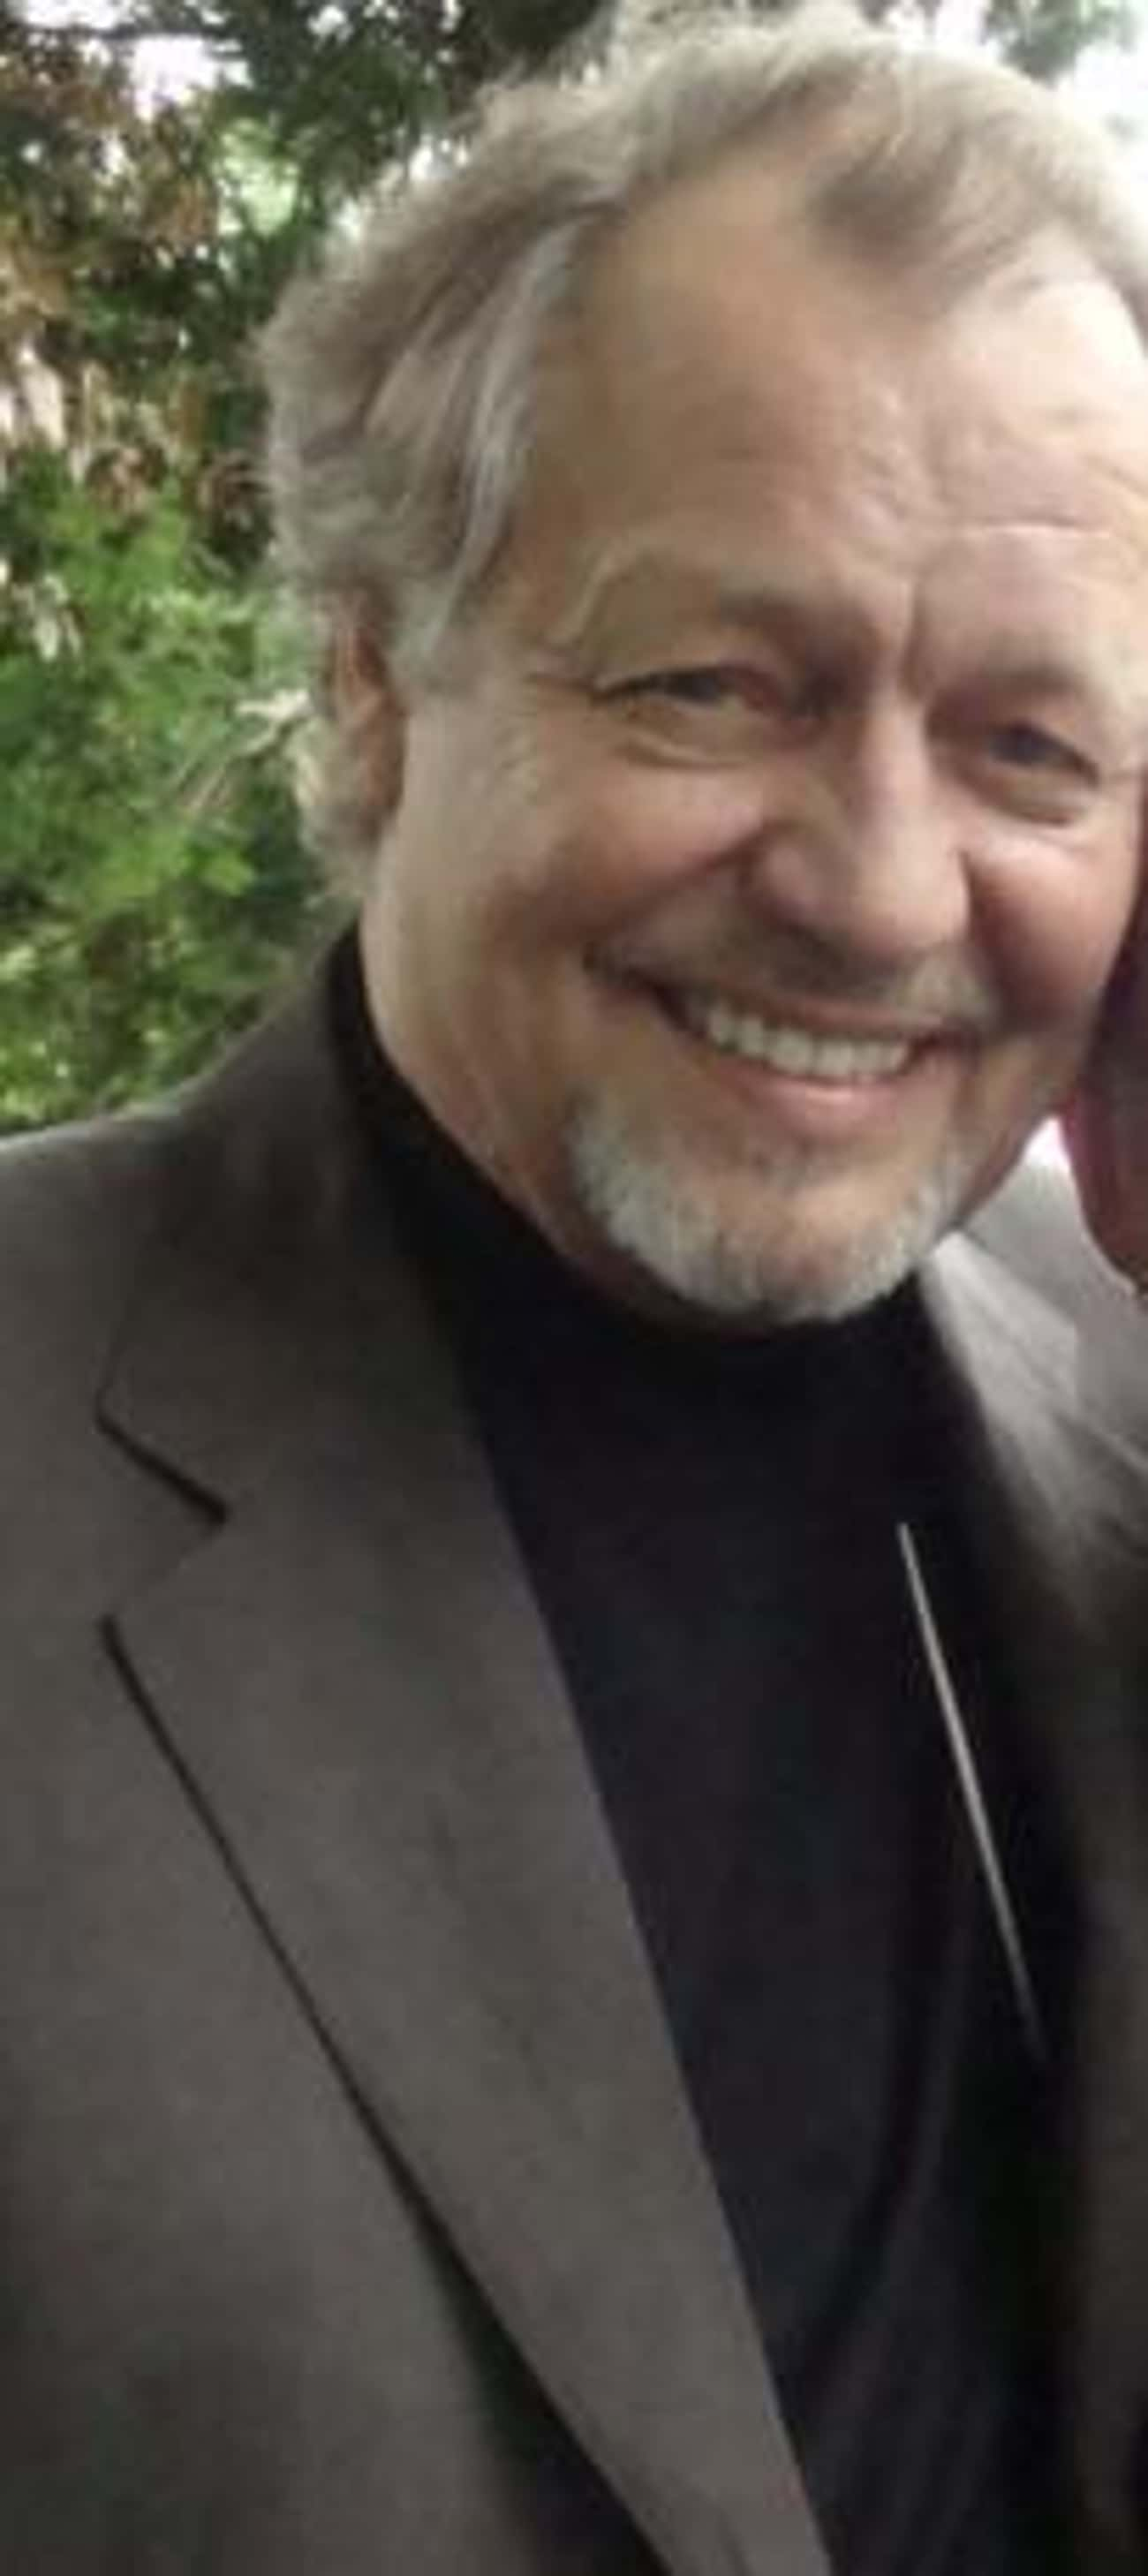 David Soul is listed (or ranked) 2 on the list Salem's Lot Cast List